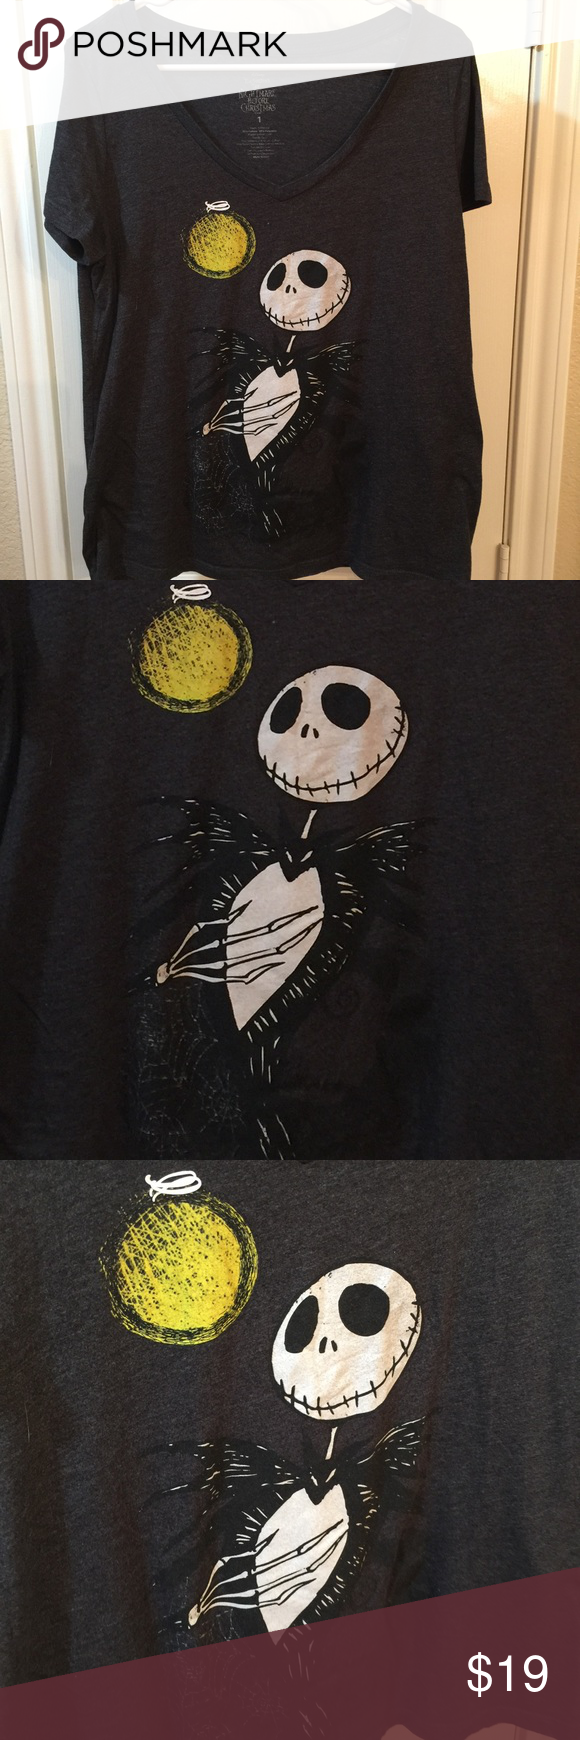 2fa30c43957ba ⭐️SALE⭐ Nightmare Before Christmas Shirt Torrid EUC Size 1 Disney s  Nightmare Before Christmas T Shirt ⭐ Shirt is approximately 26